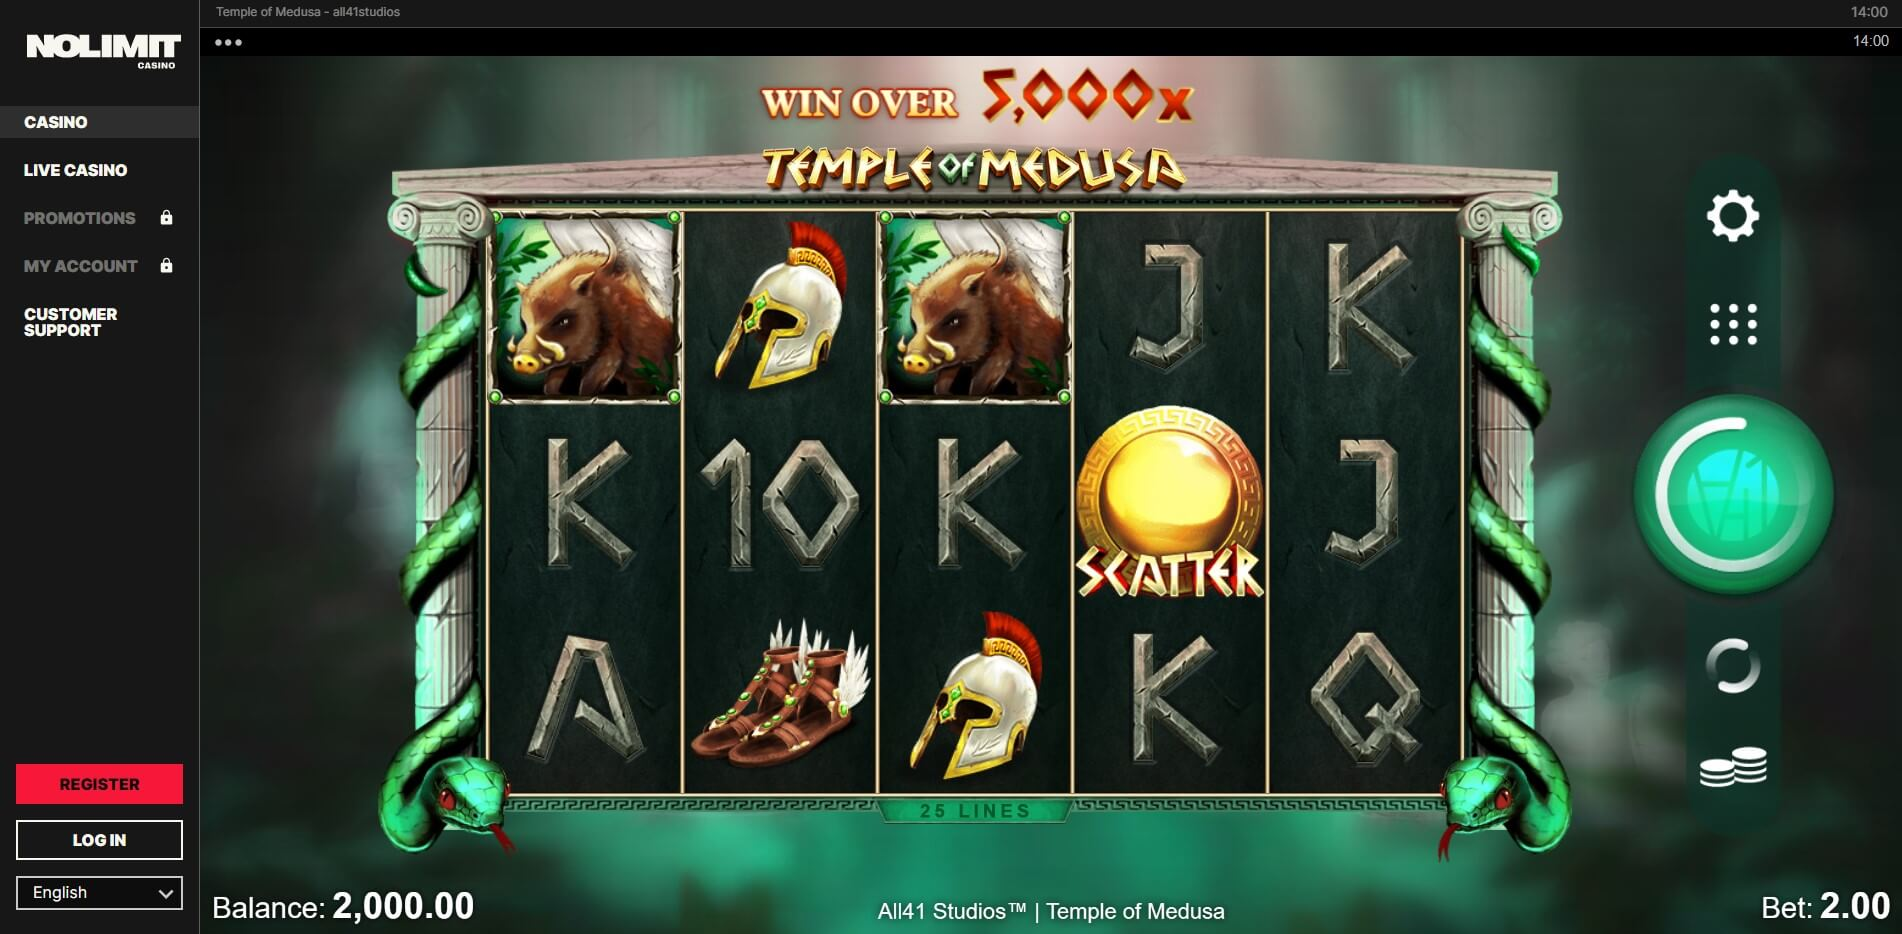 Game Play at Nolimit Casino